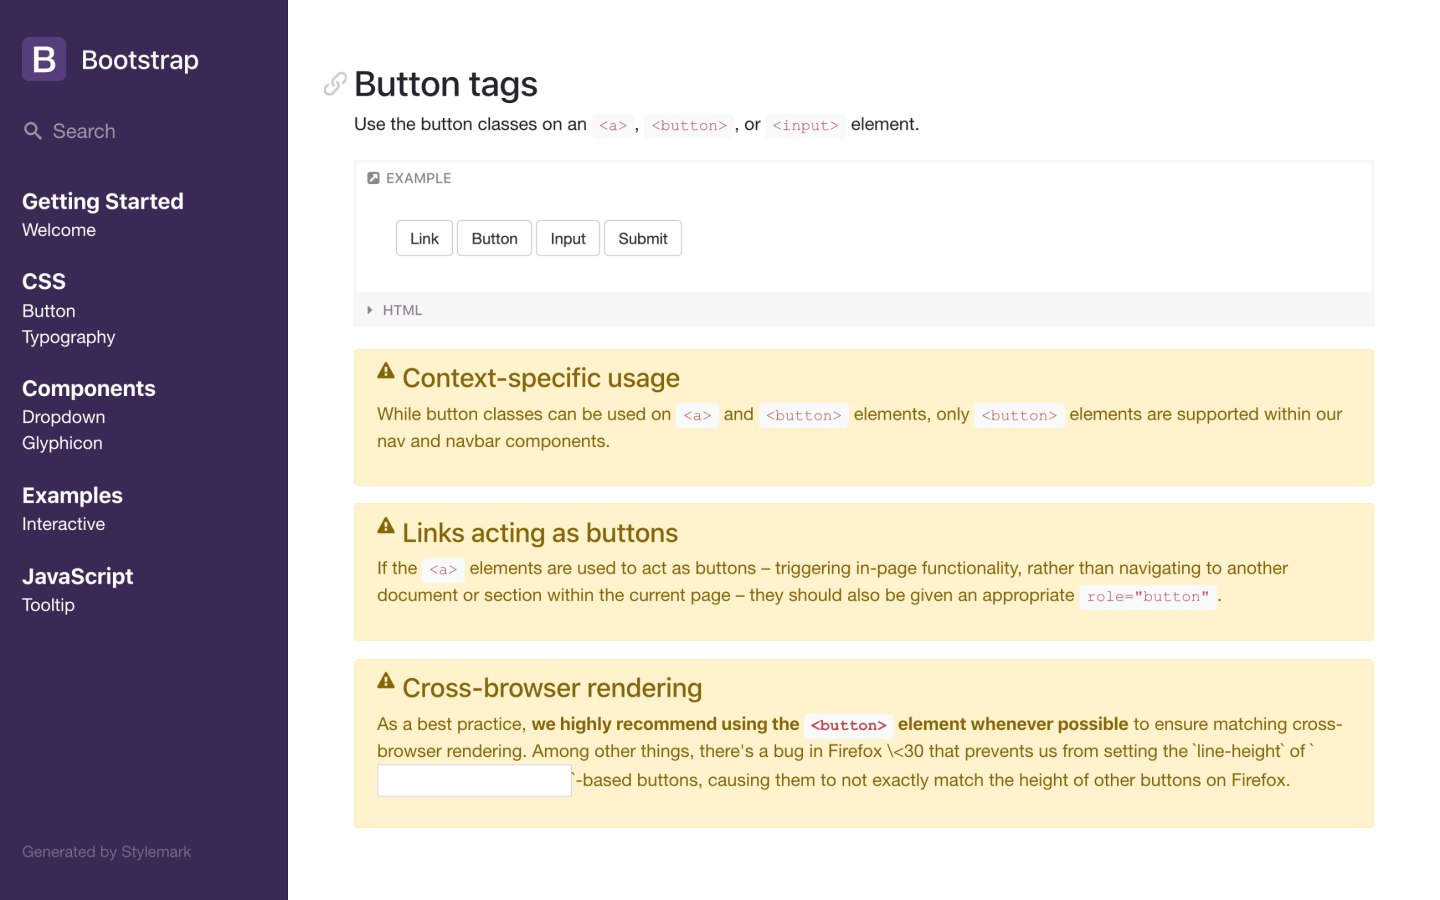 Stylemark Style Guide, Bootstrap example.